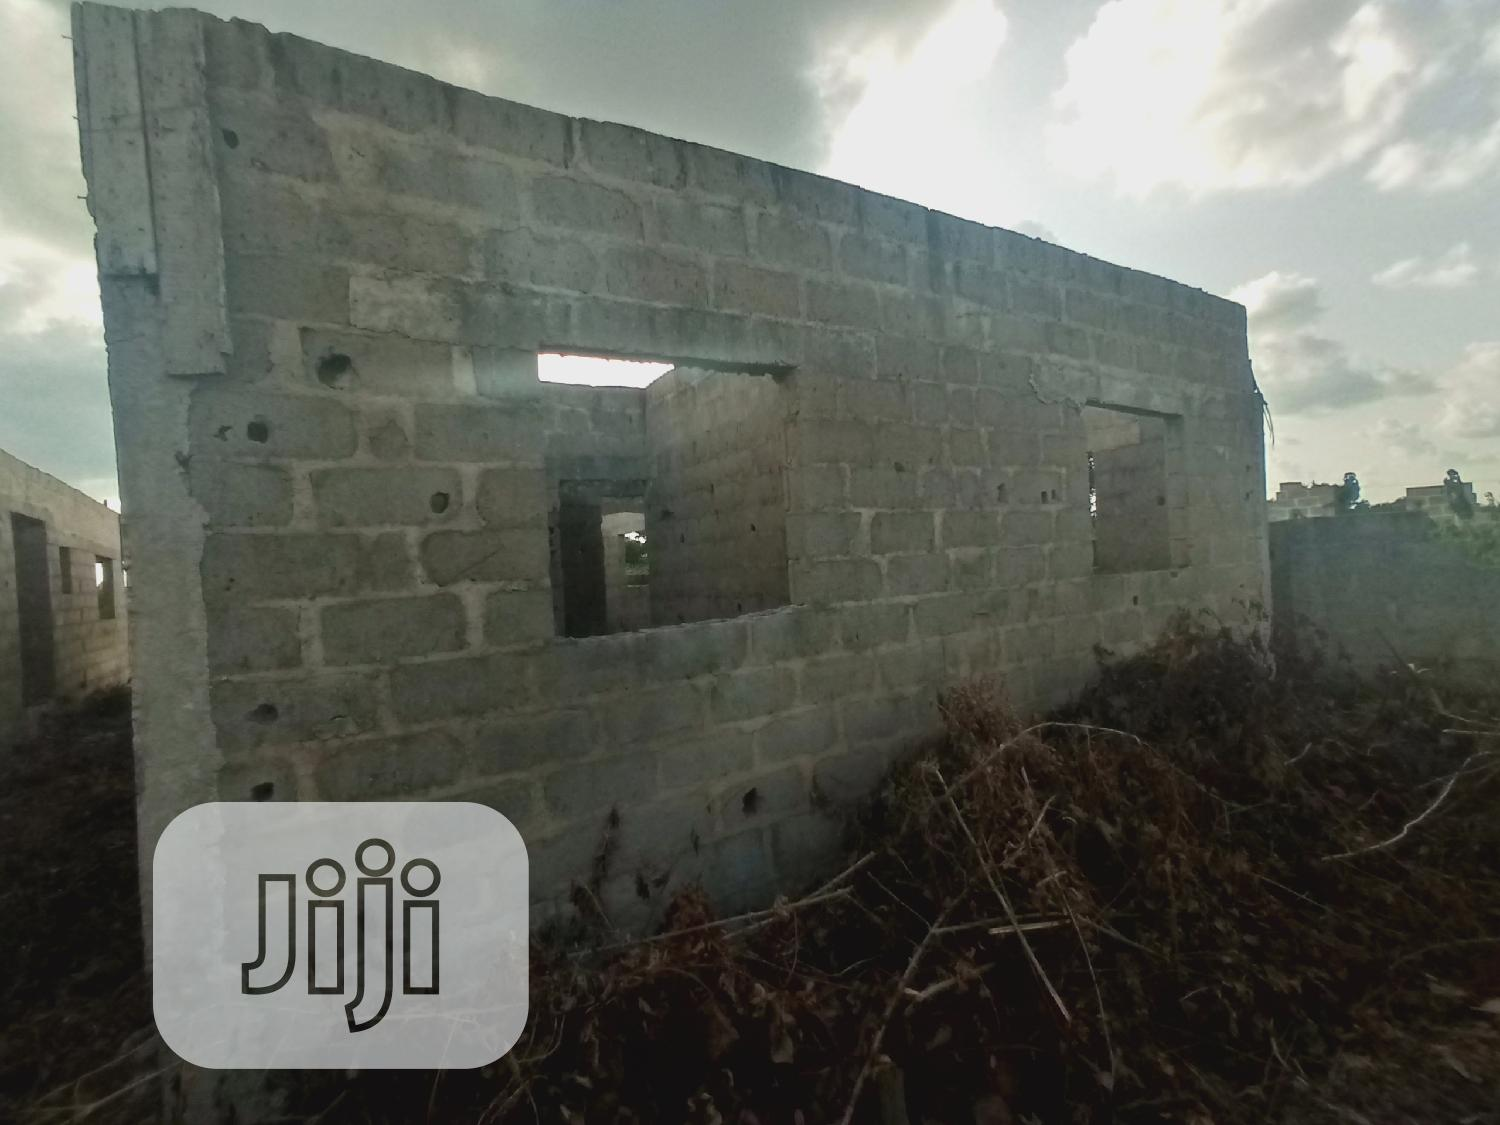 This Is Two Building Of 3 Bedroom Flat On 600sqm At Roofing Stage | Houses & Apartments For Sale for sale in Ado-Odo/Ota, Ogun State, Nigeria